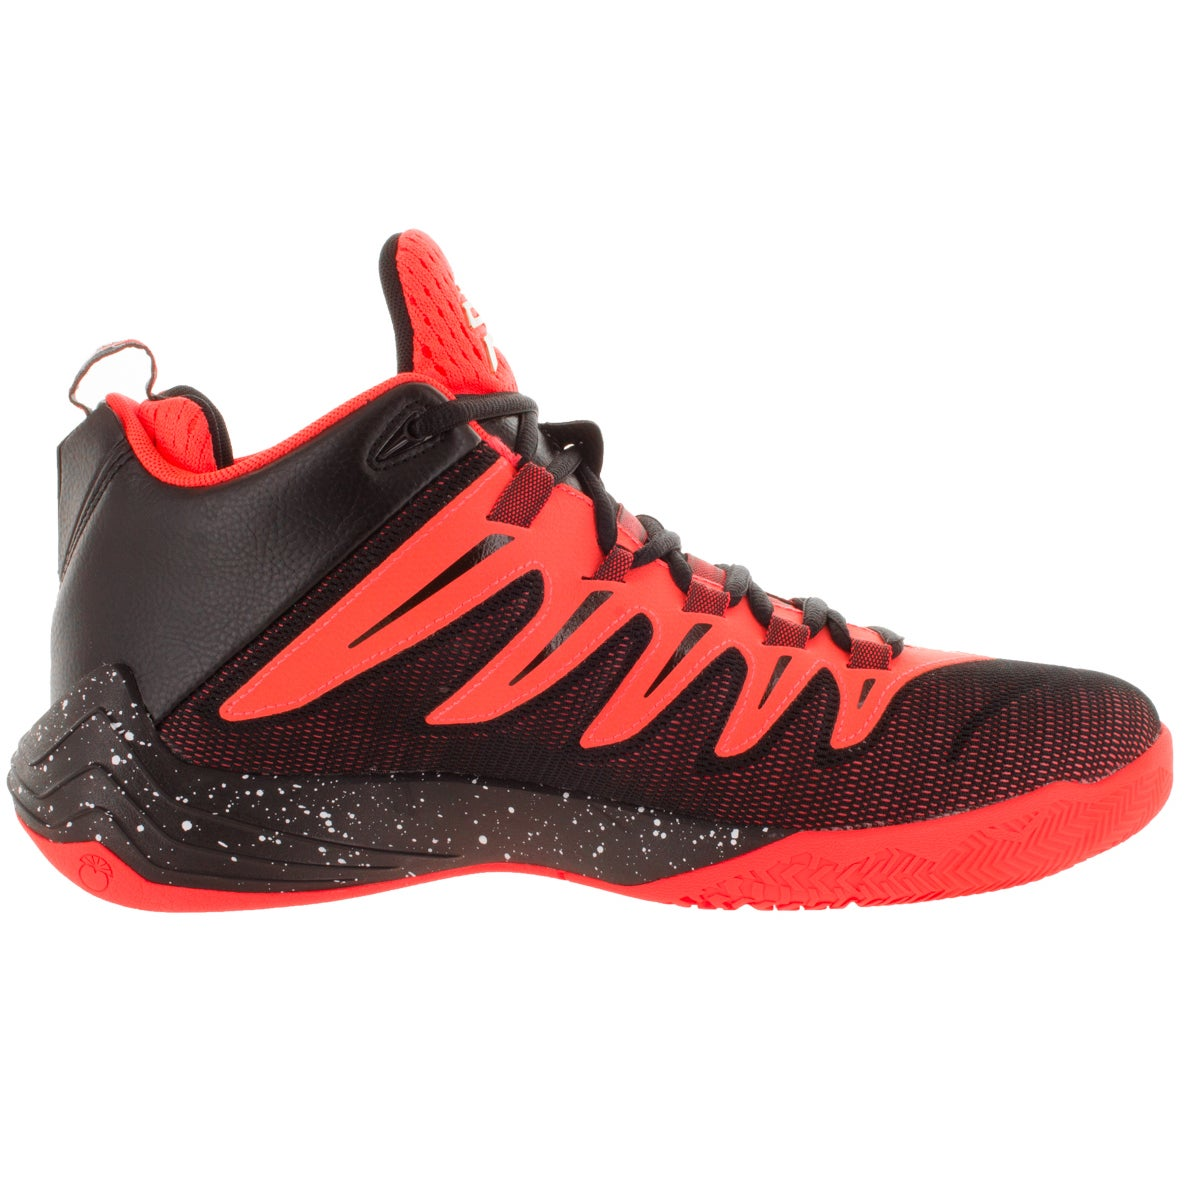 84dc0f73854294 ... 50% off shop nike jordan mens jordan cp3.ix orange gld str black inf